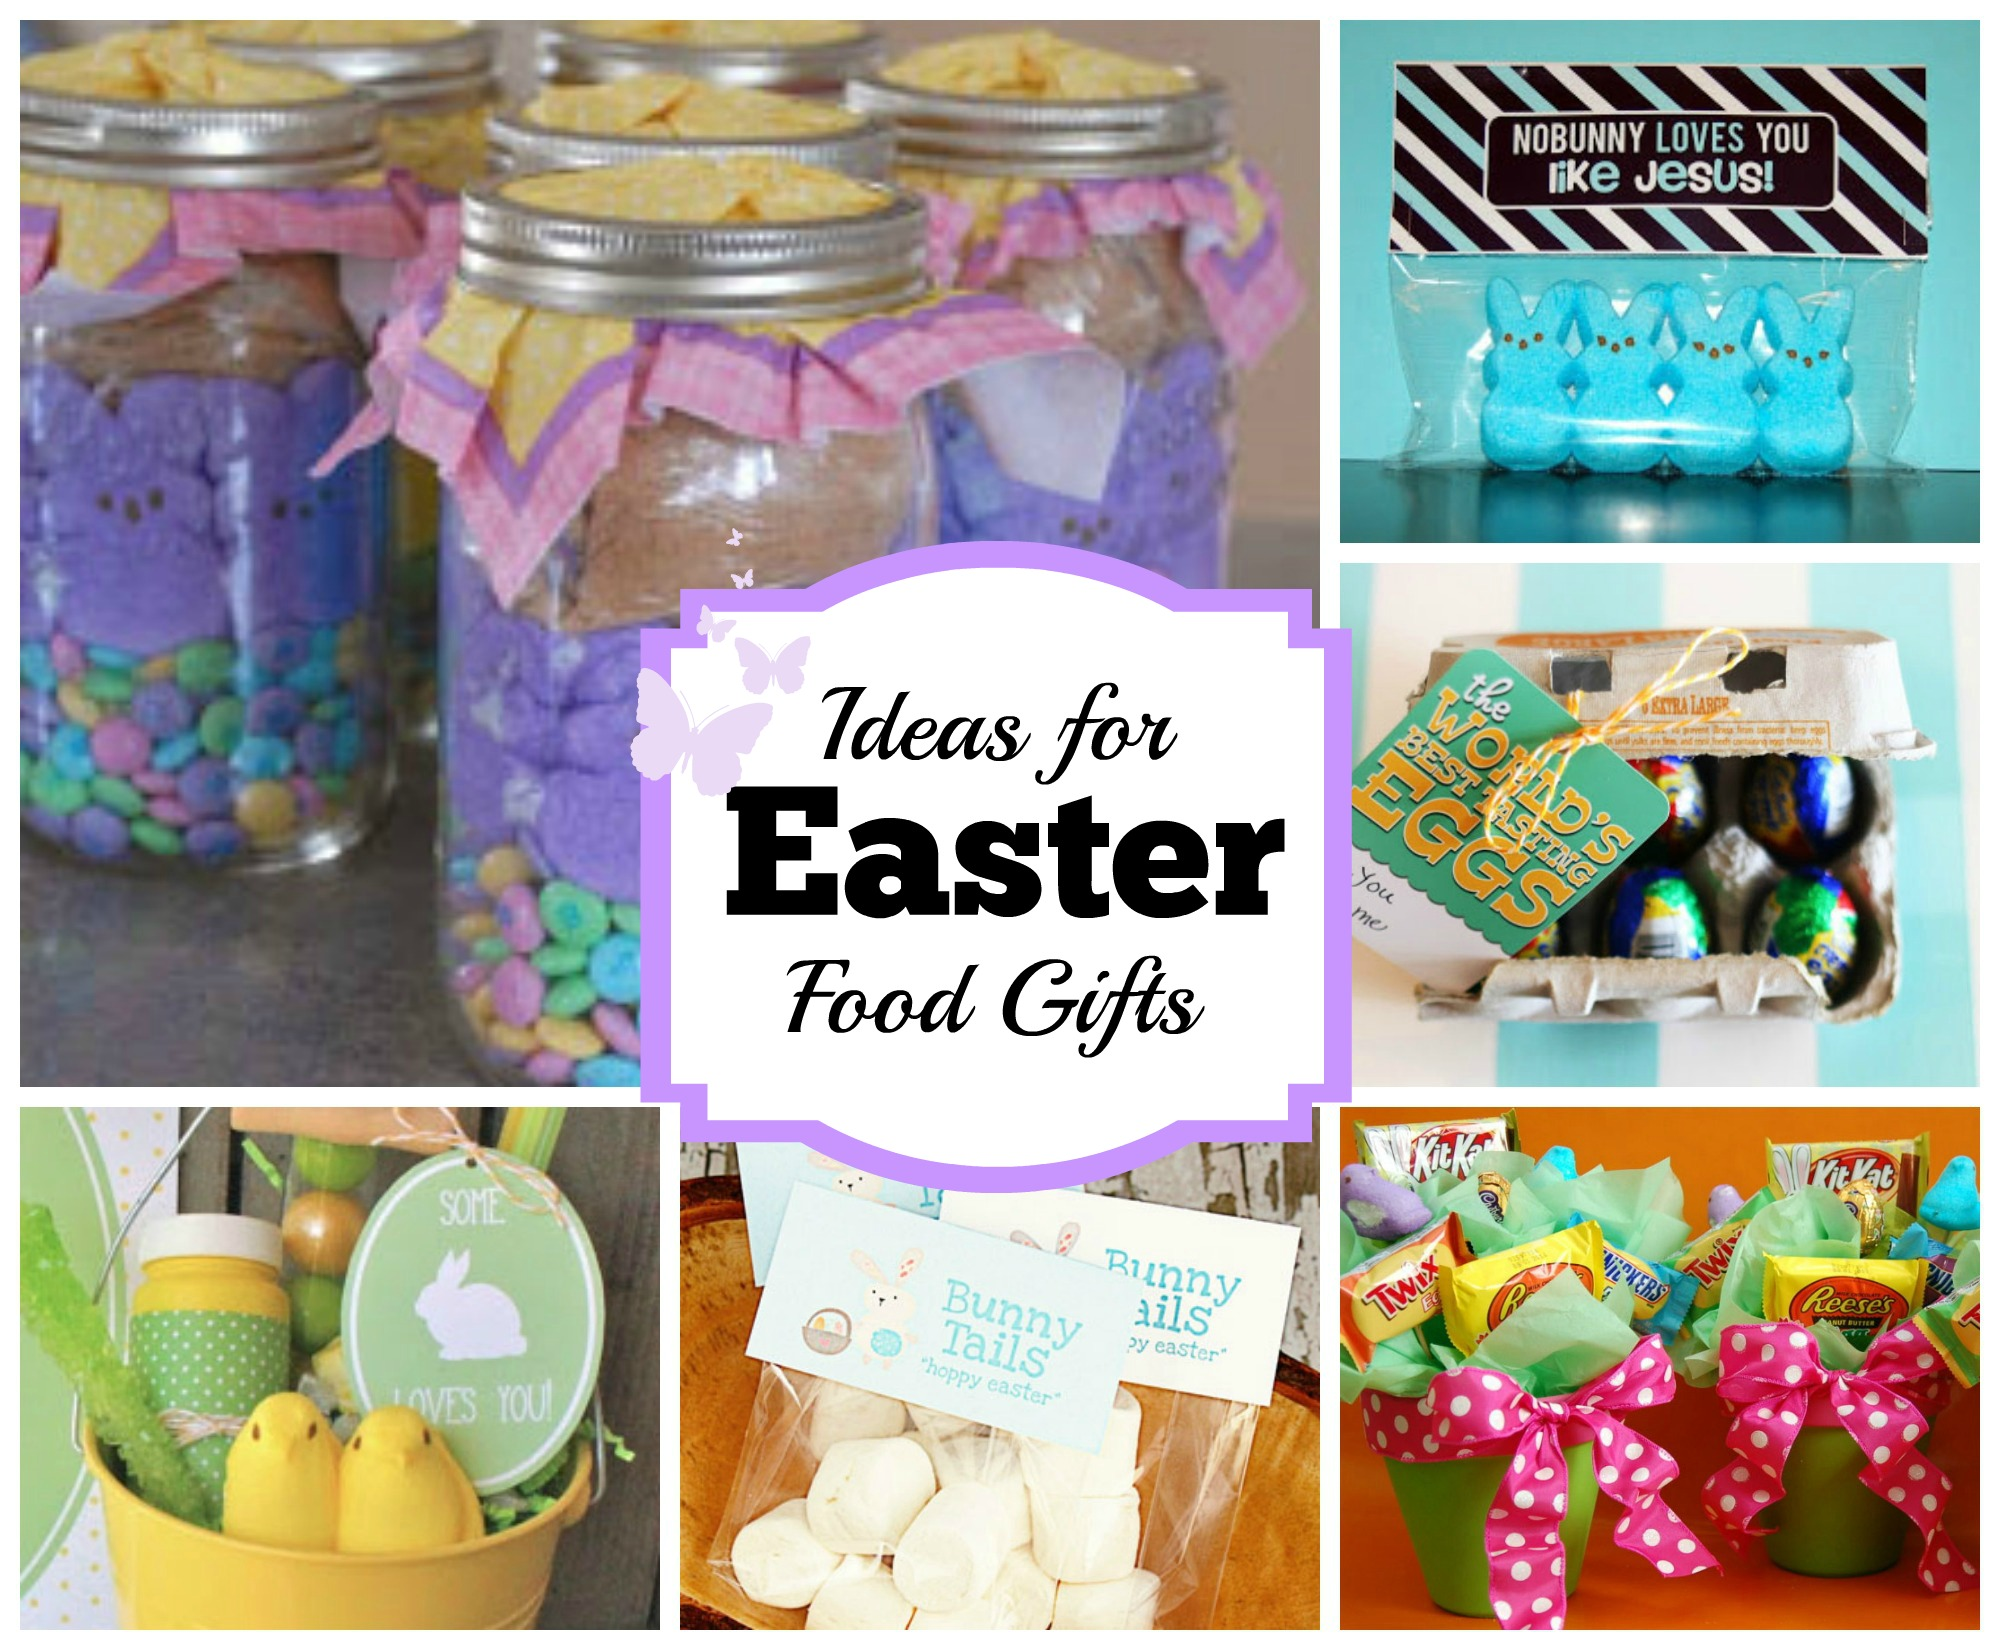 Diy easter food gift ideas celebrating holidays creative easter food gift ideas negle Choice Image